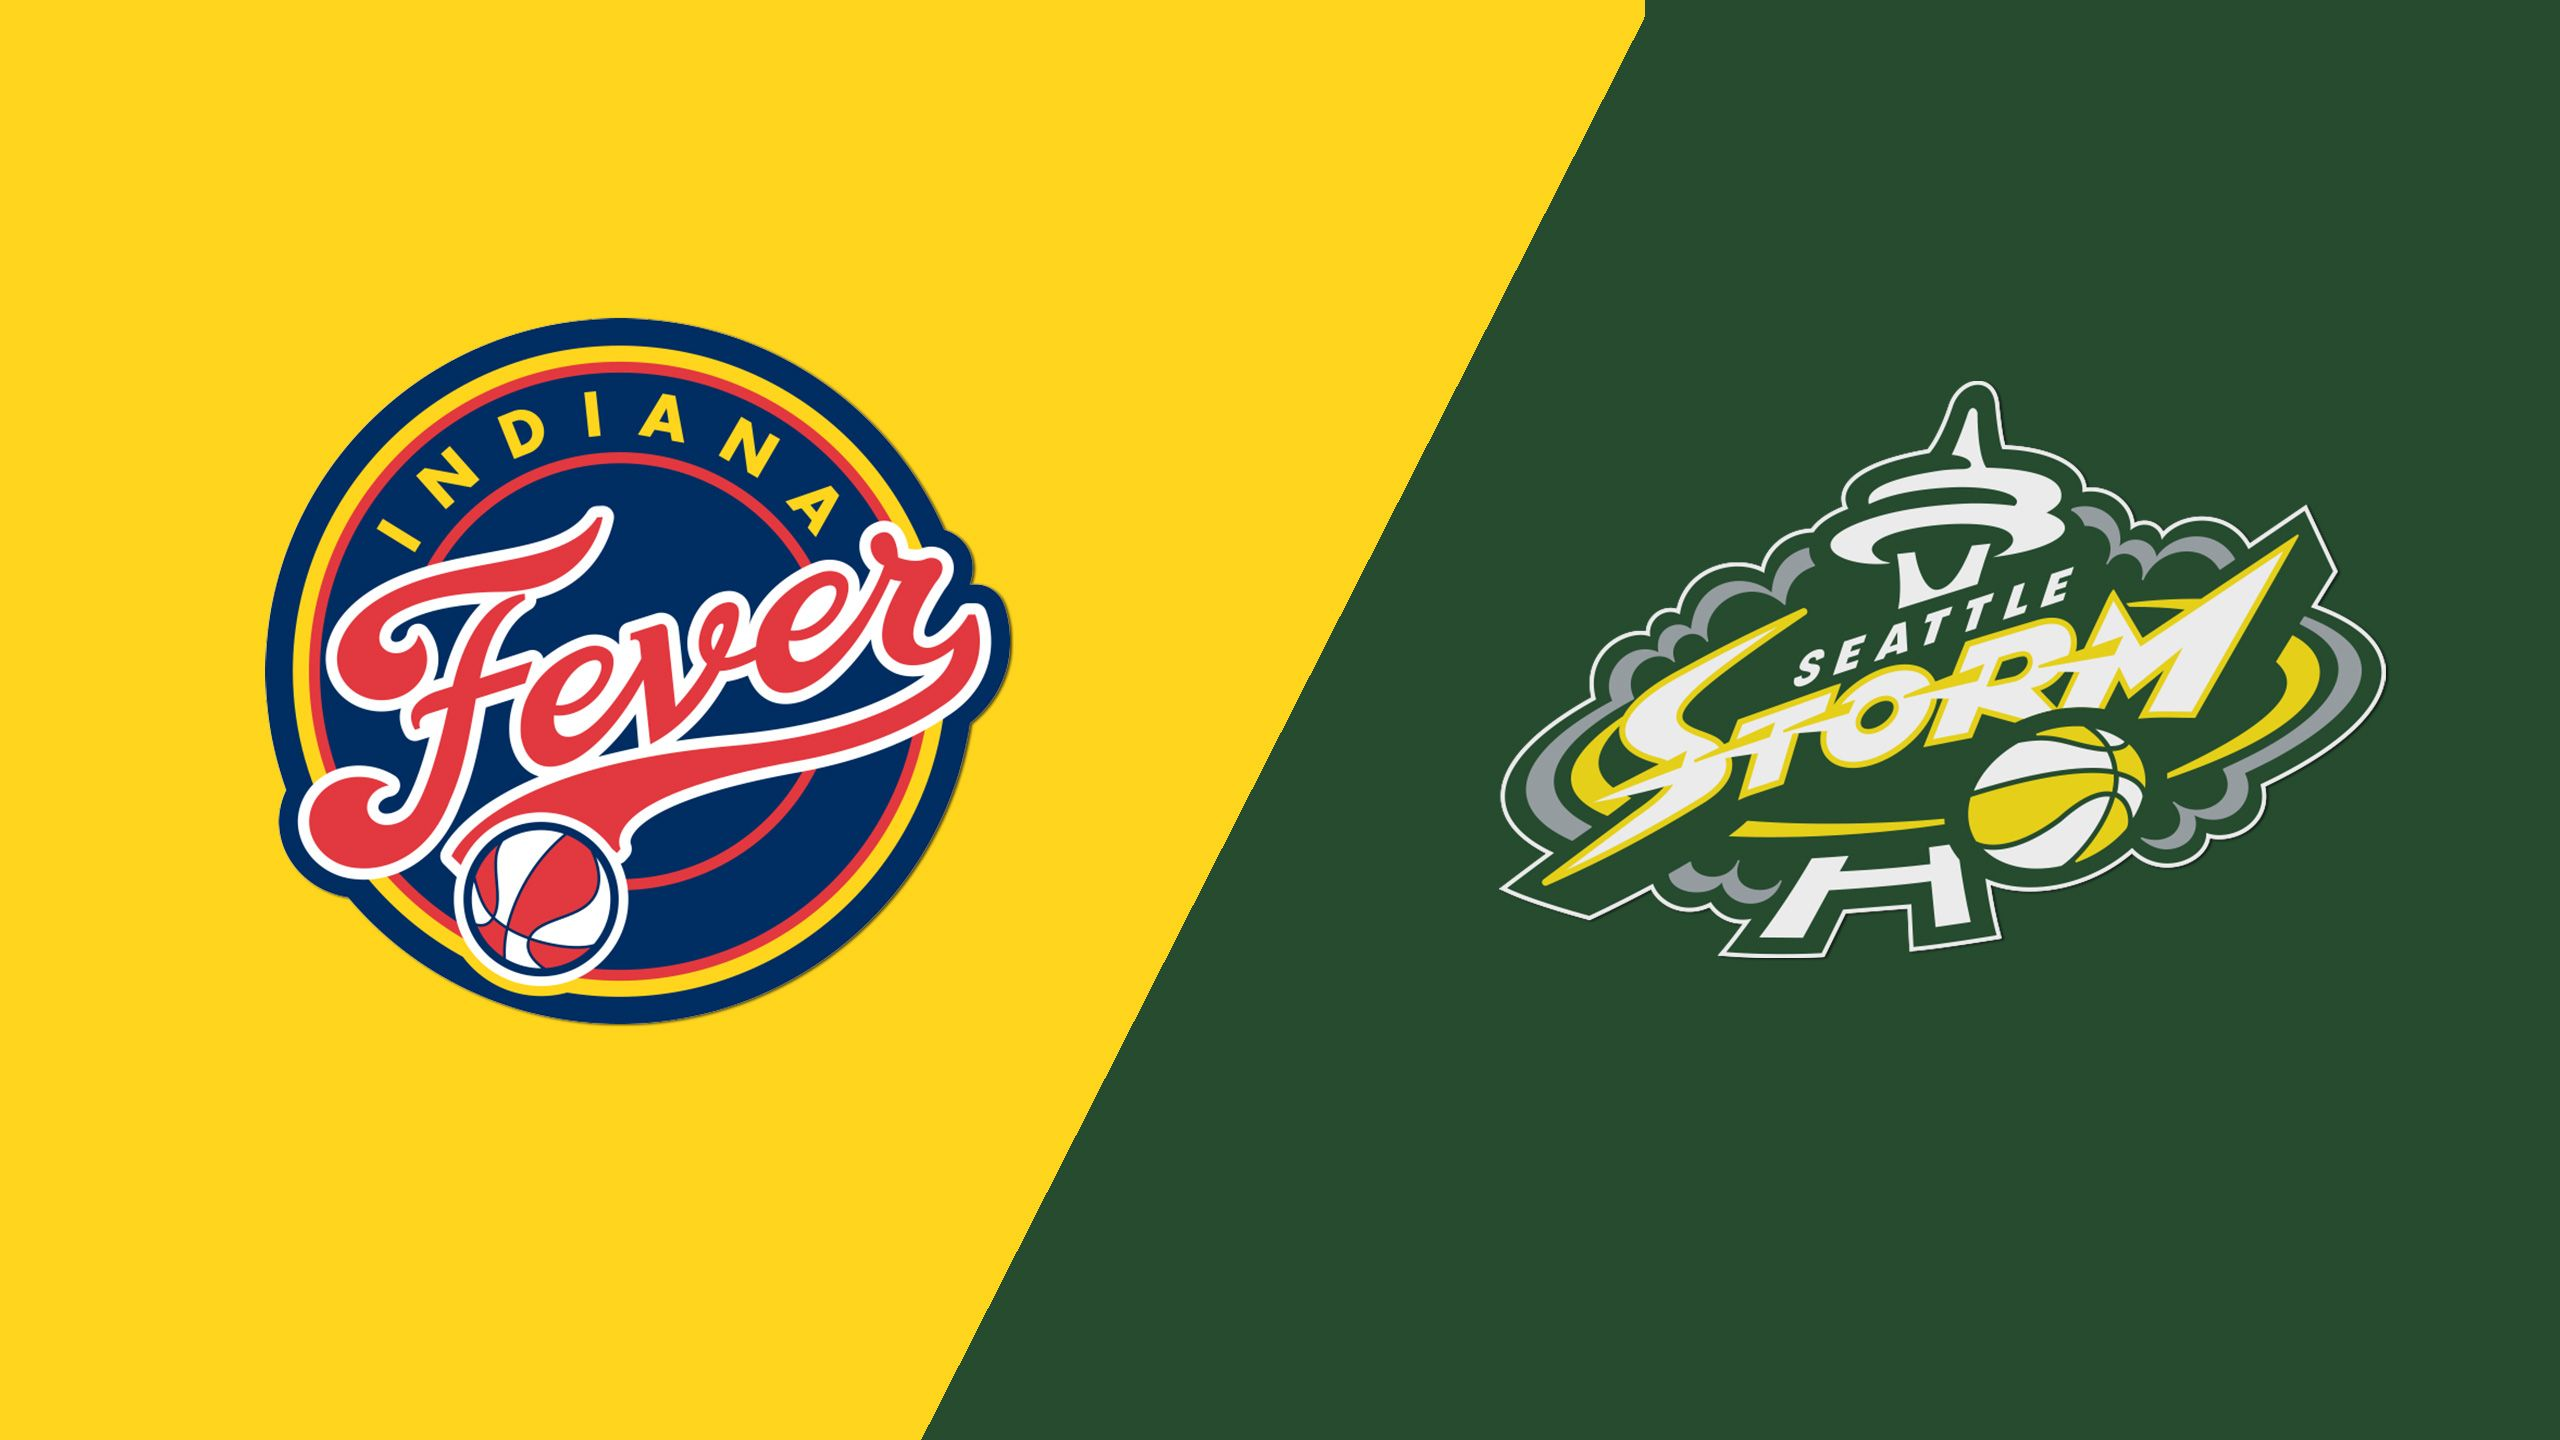 Indiana Fever vs. Seattle Storm